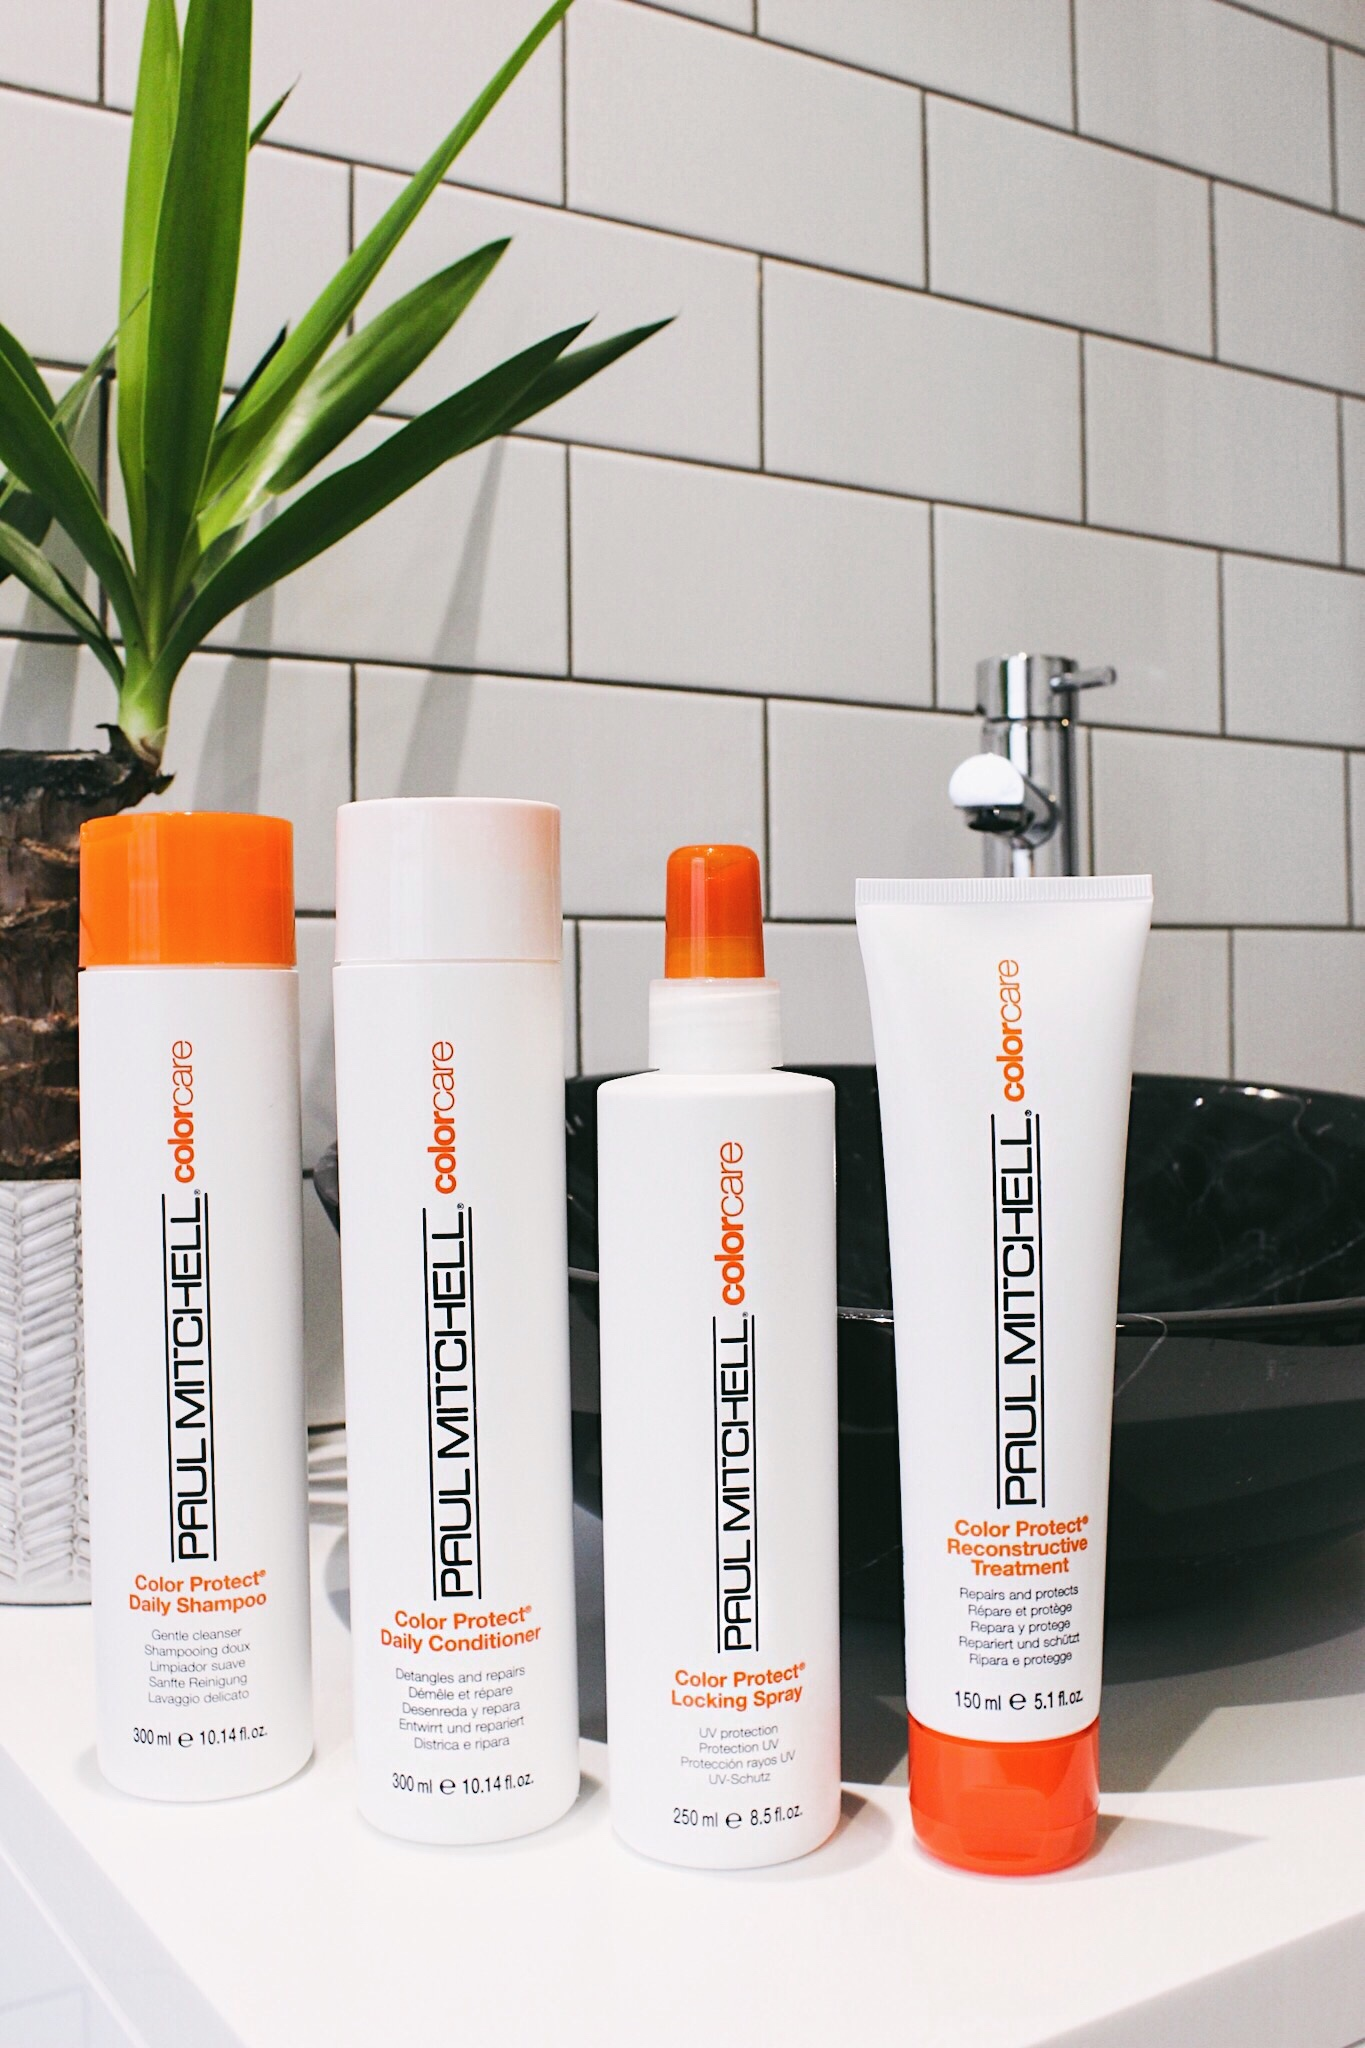 Paul Mitchell Hair Care products for bleached hair